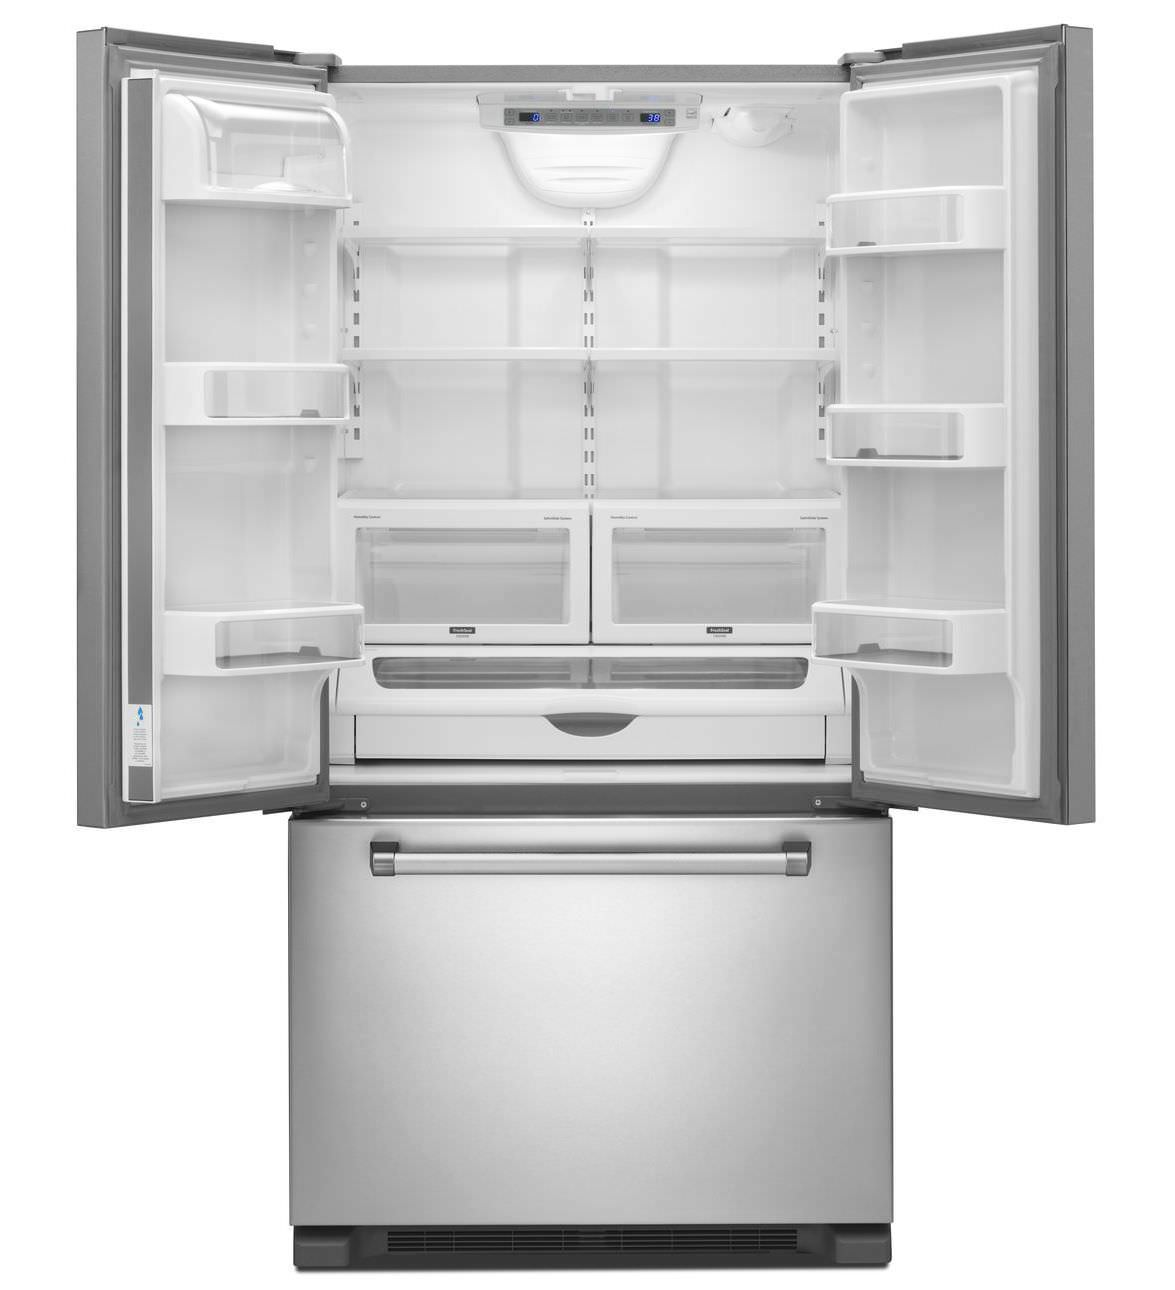 Residential Refrigerator Freezer / American / Stainless Steel /  Energy Efficient. KFCP22EXMP KitchenAid